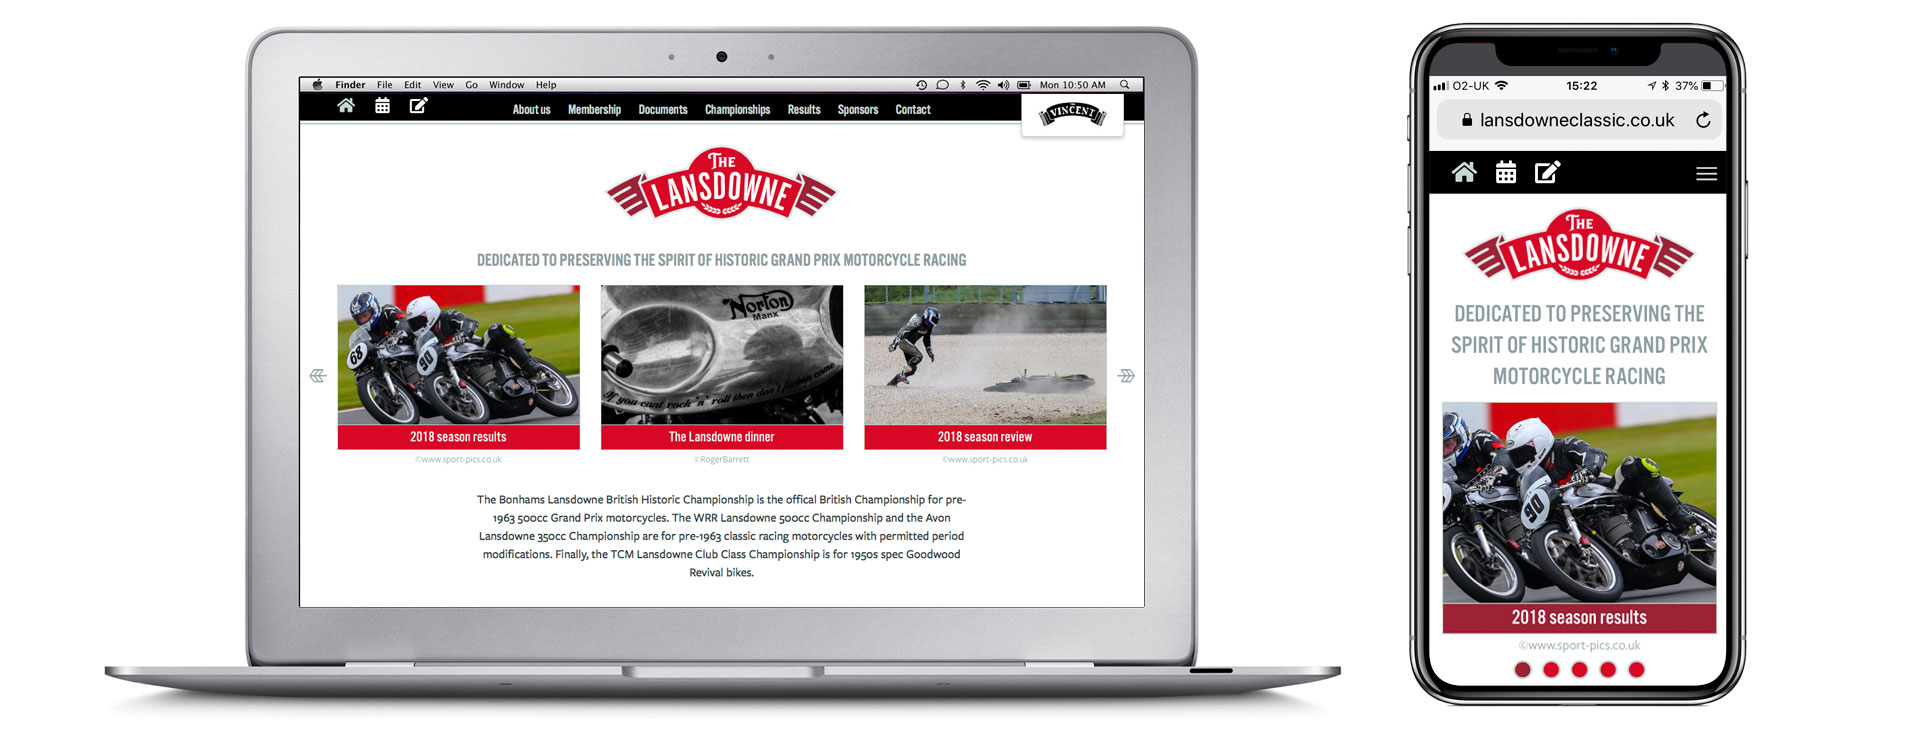 Motorsport website design for the Lansdowne Classic Series